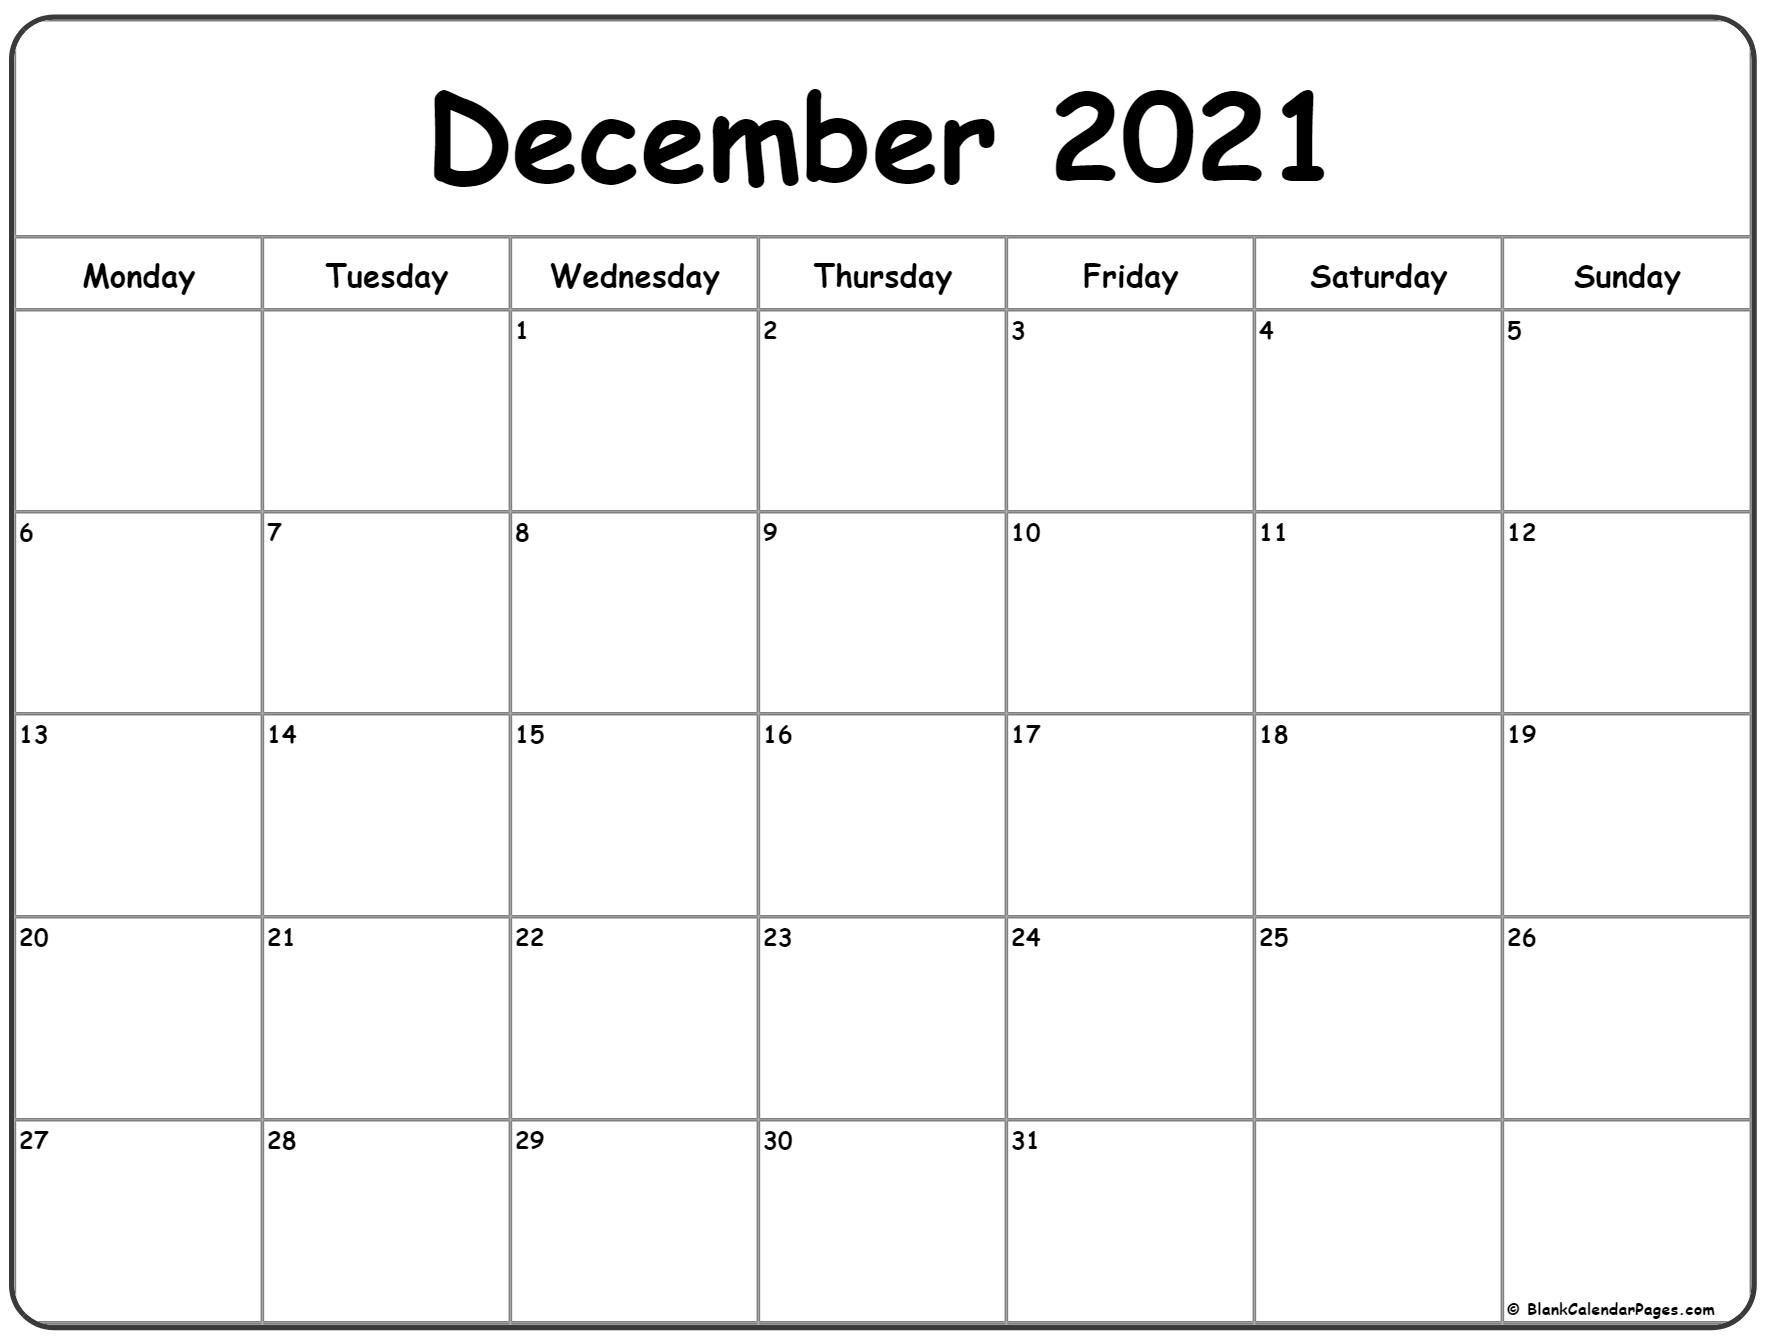 december 2021 monday calendar | monday to sunday